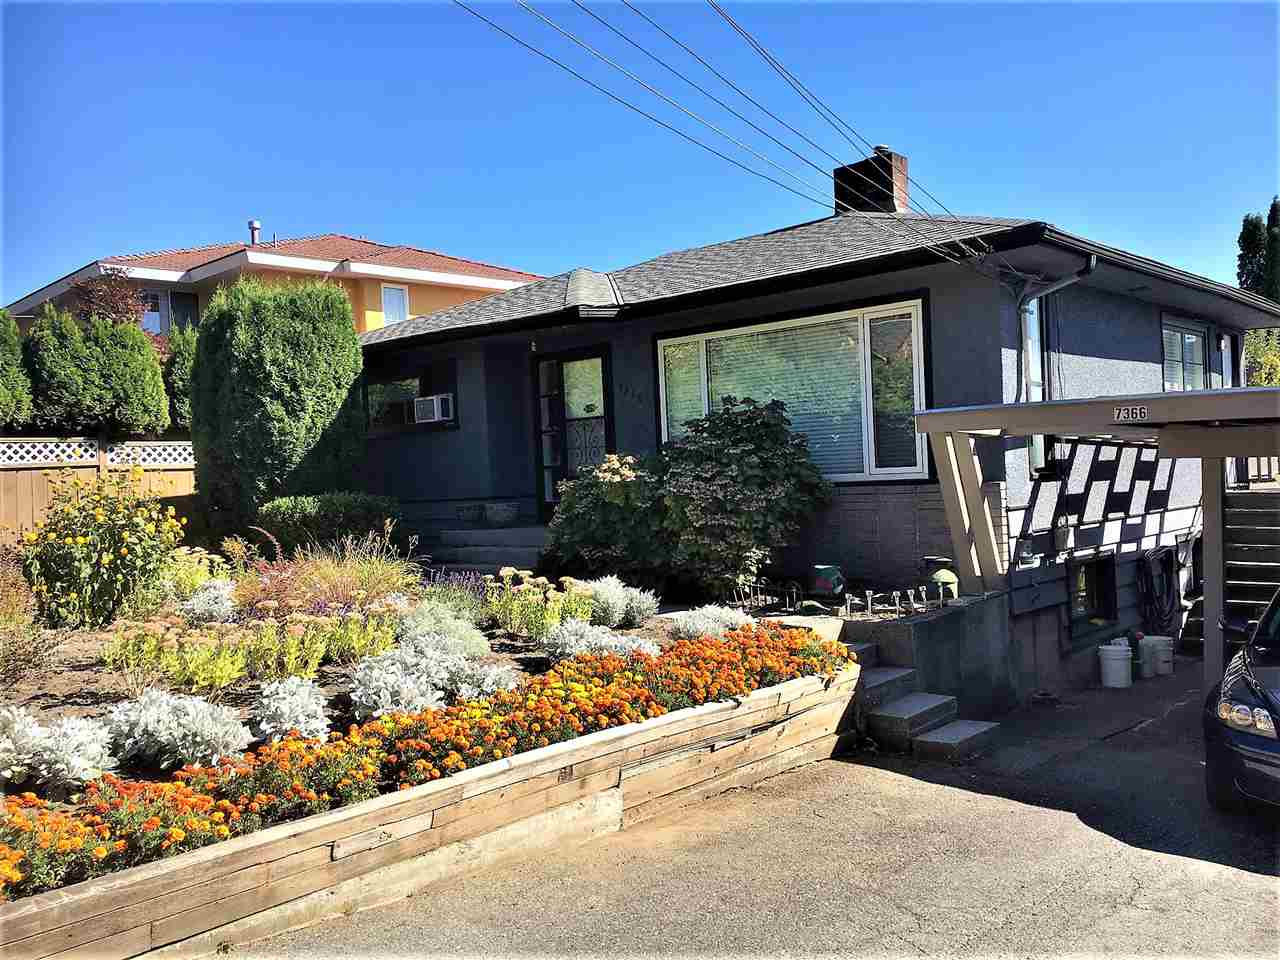 "LARGE VIEW PROPERTY. (105 x 108 Lot) with Lane Access, Hold and Build your dream home here! Excellent location within minutes to Sperling Skytrain Station. House is very liveable and the basement is roughed-in and has suite potential with separate entrance.  Seller planned to renovate and update the interior when tenant vacates property. Don't miss this one. All meas approx. Dial ""0"" if Voicemail is on."